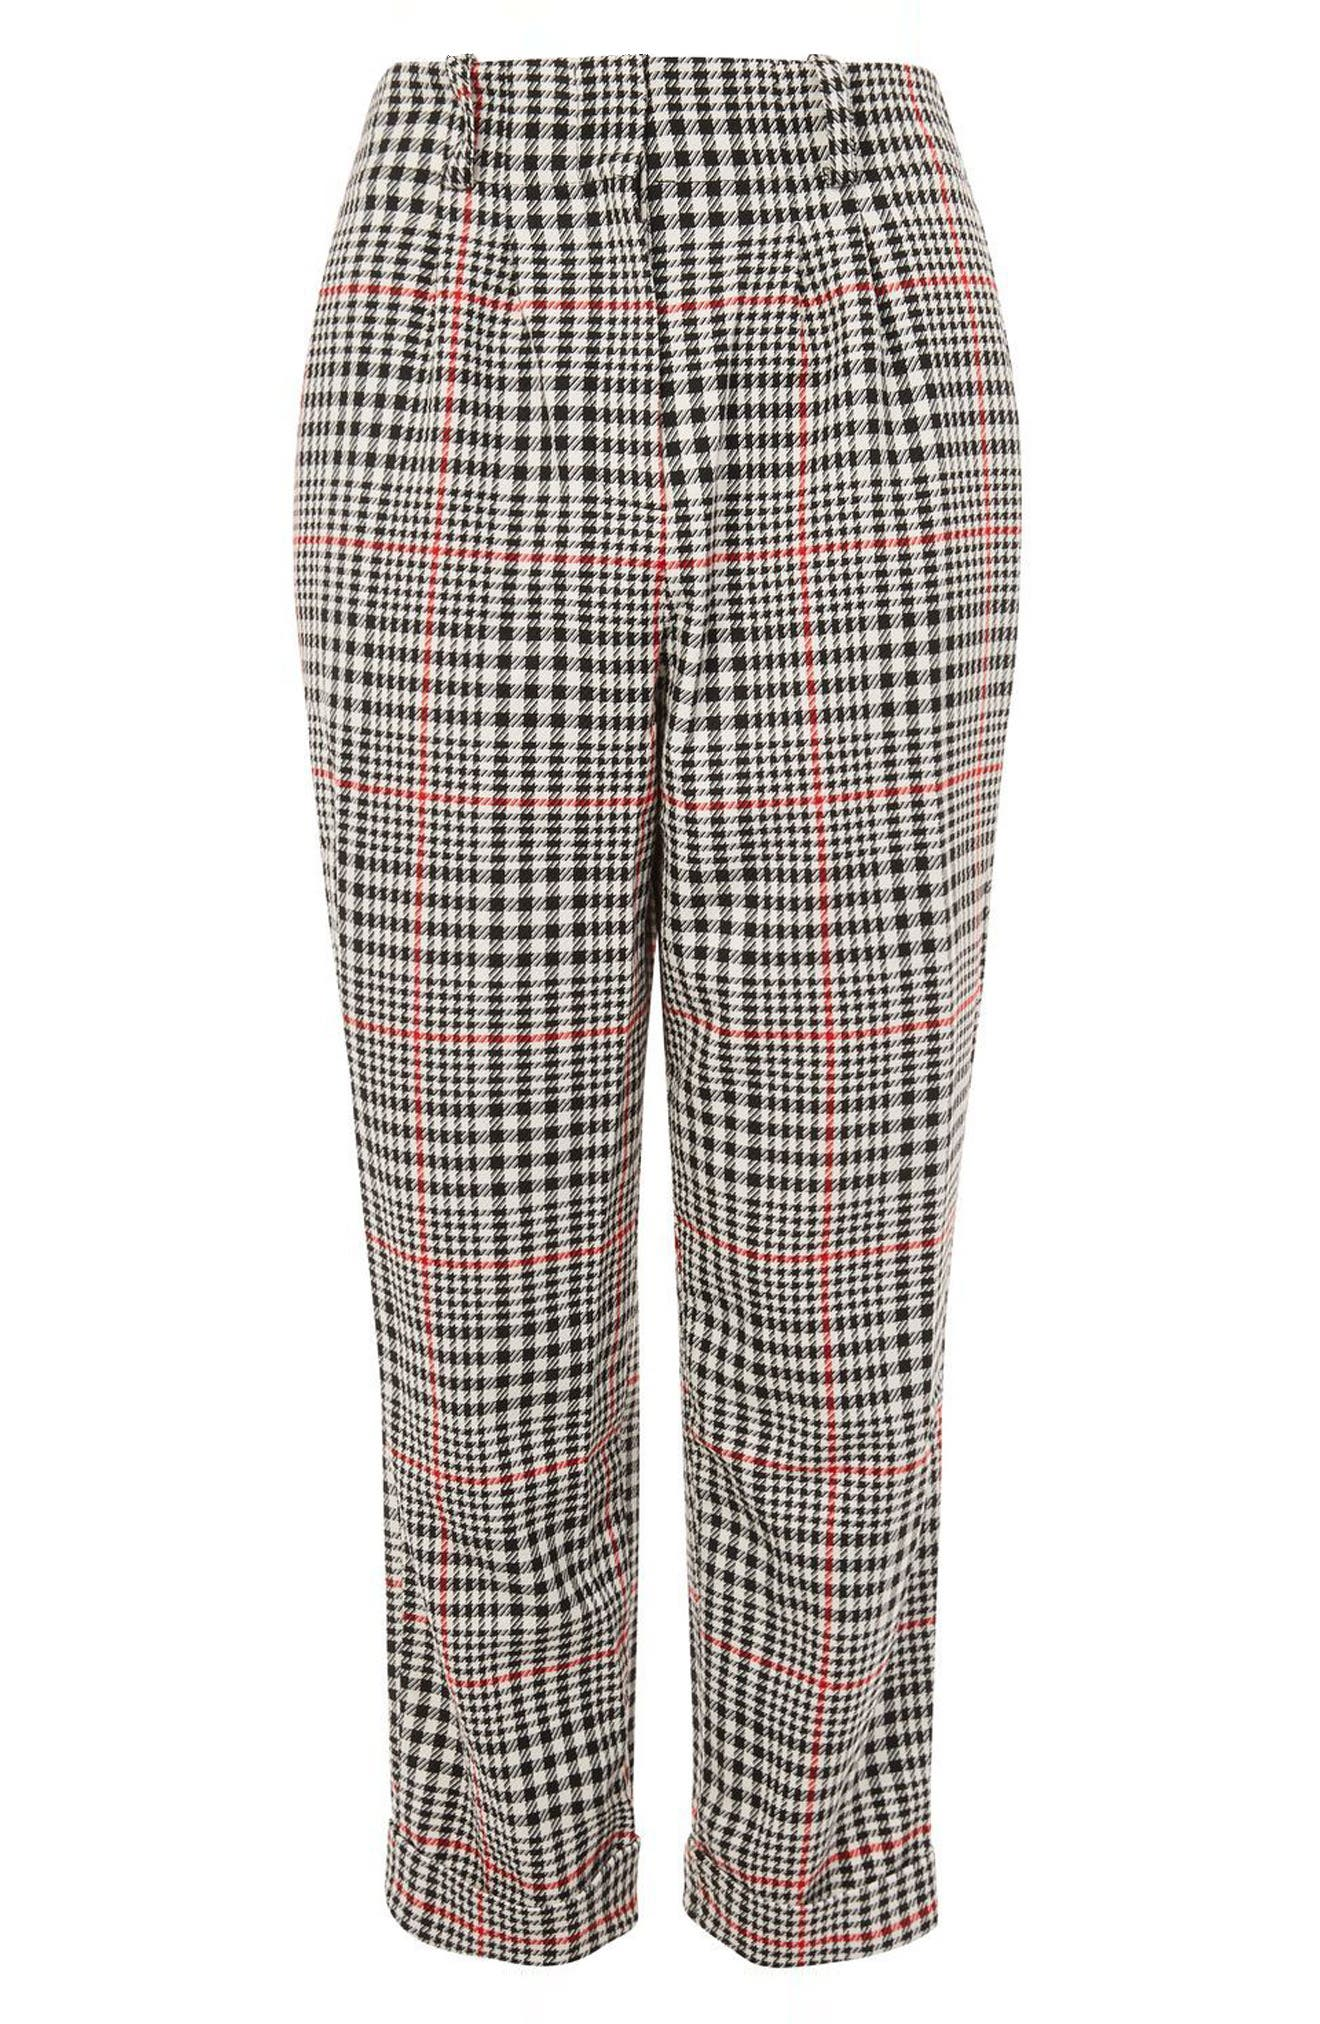 Red Pop Check High Waist Mensy Trousers,                             Alternate thumbnail 3, color,                             001